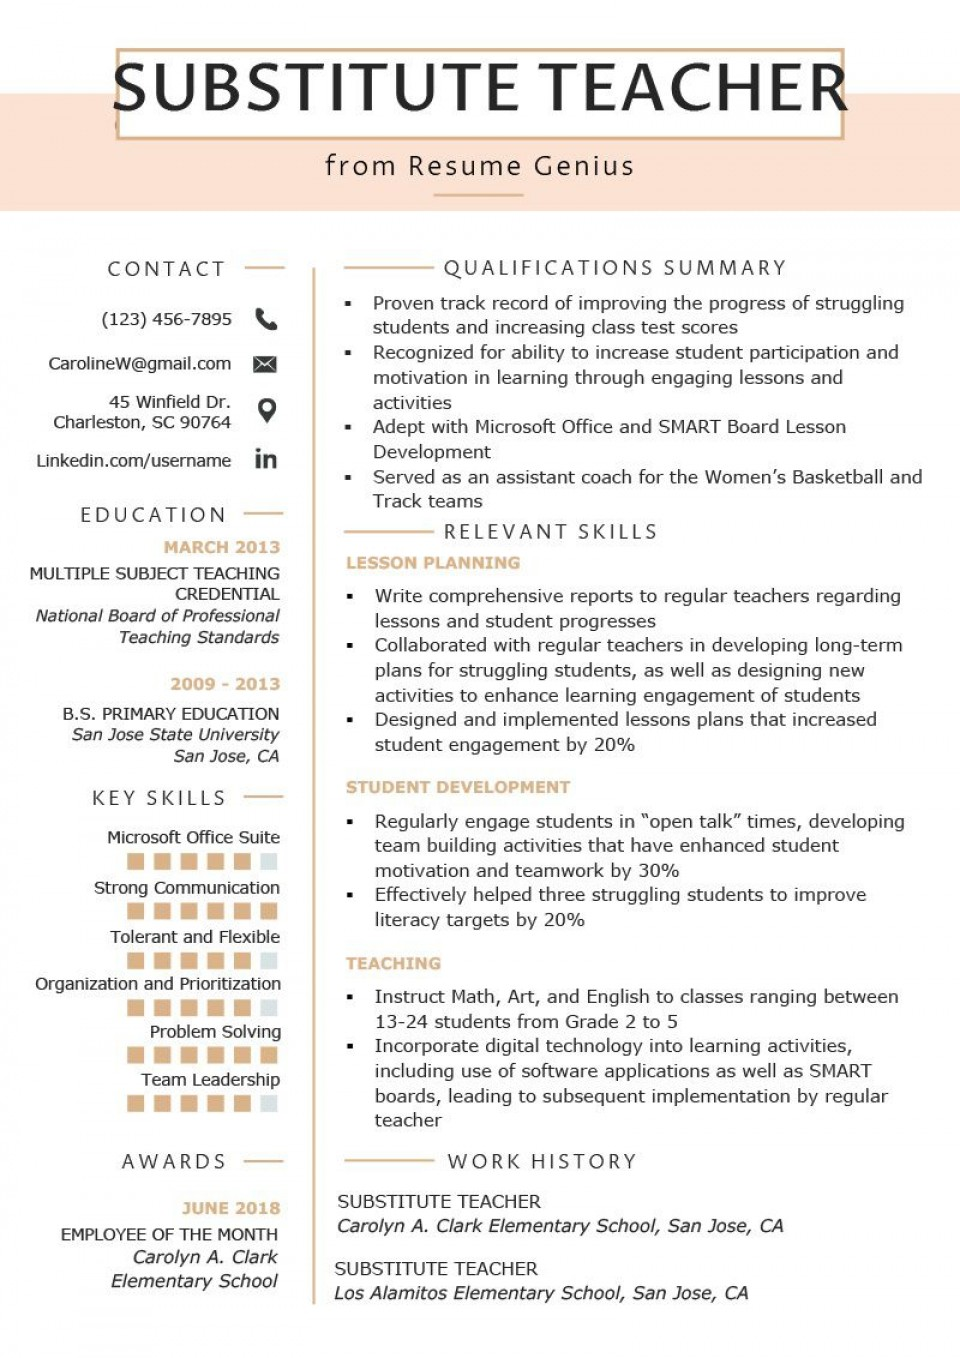 002 Incredible Resume Template For Teacher Picture  Australia Microsoft Word Sample960